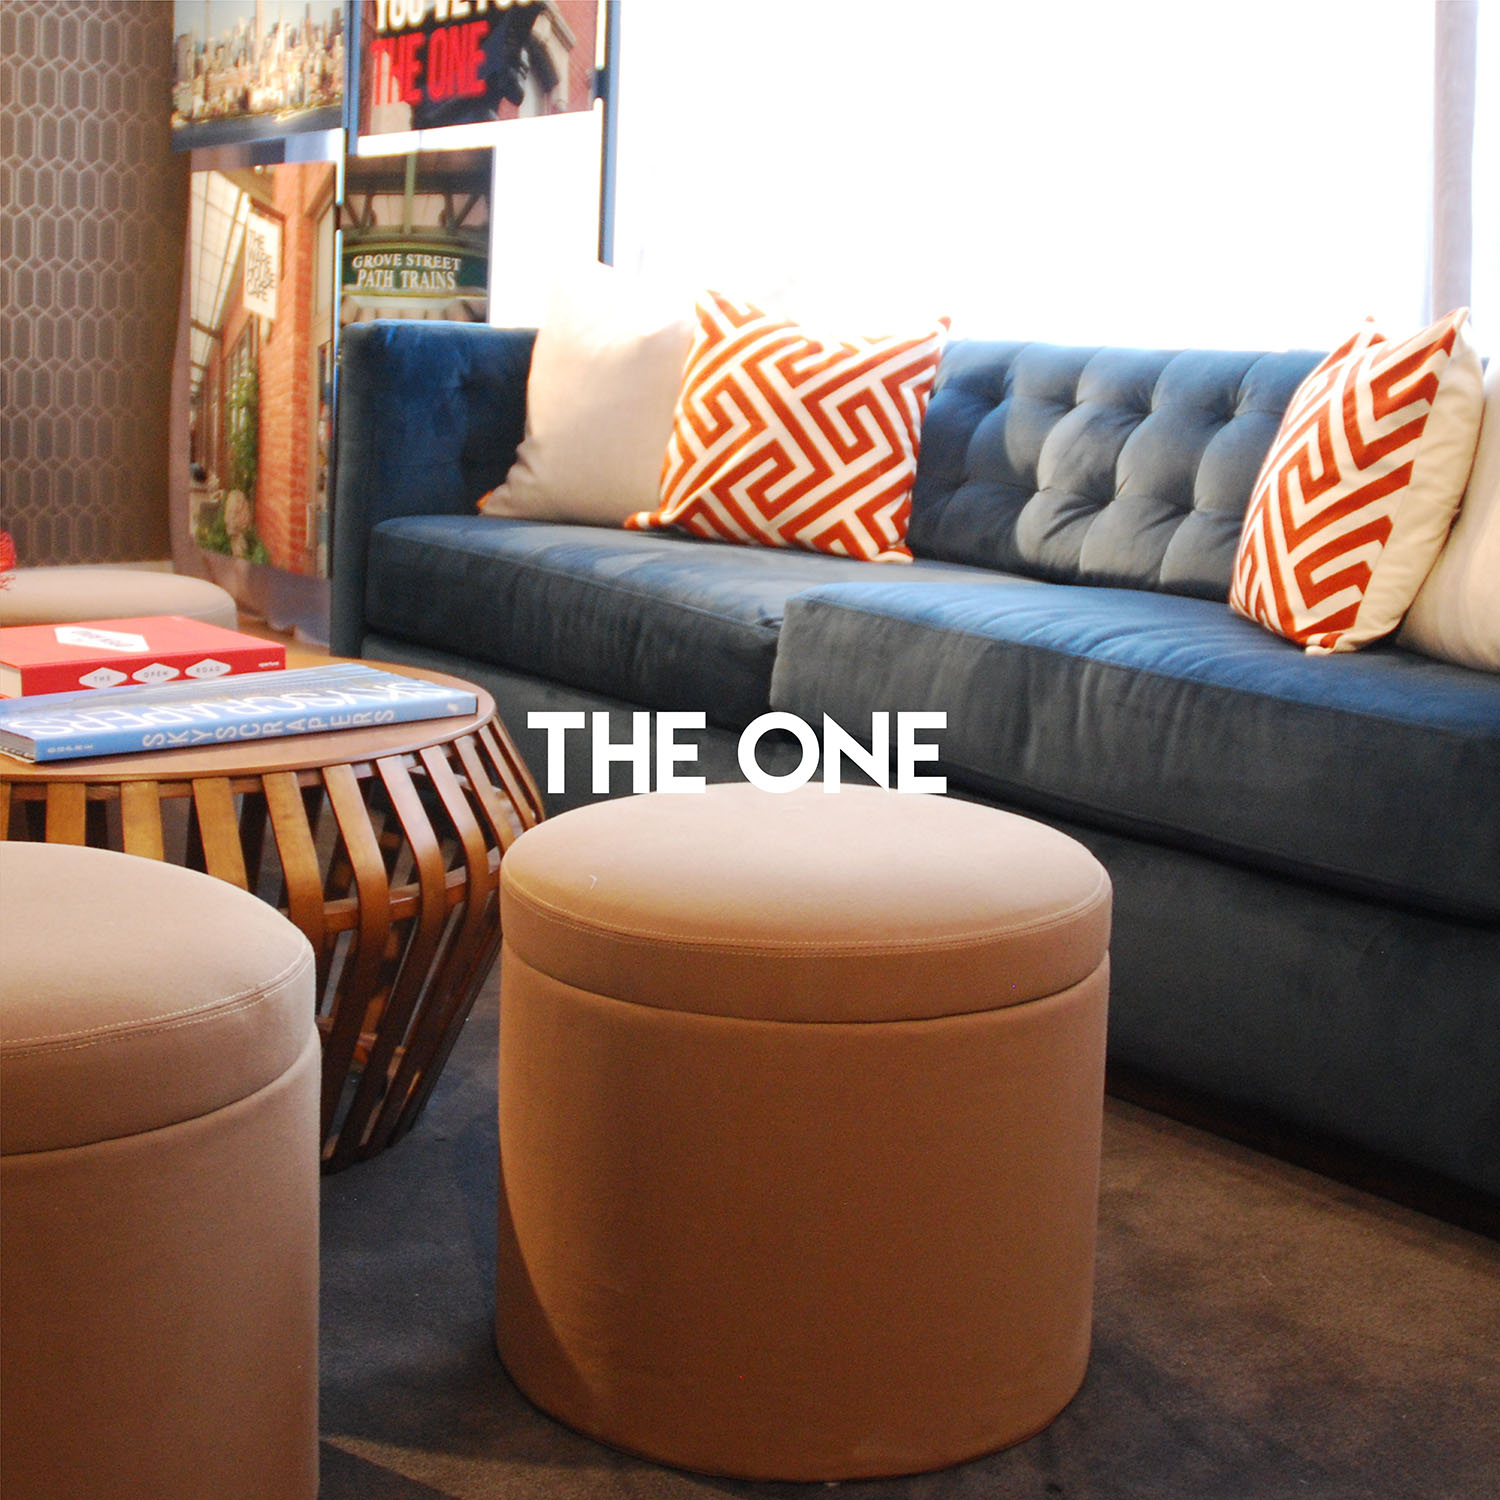 The One in Jersey City, NJ | Experiential Marketing and Pop-Up Installation by Gala Magriña Design